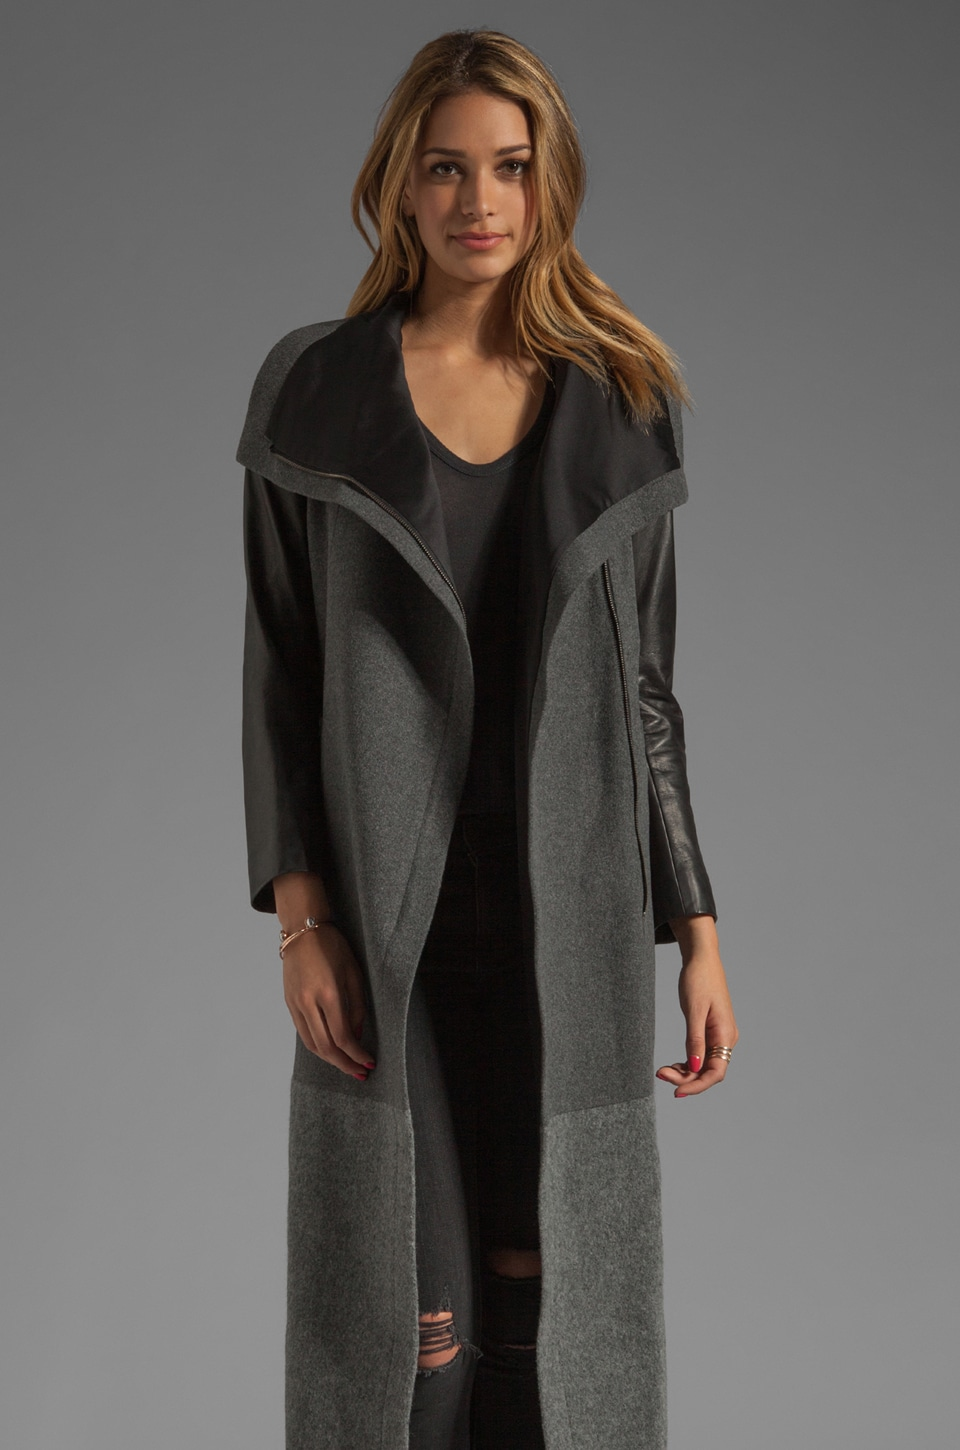 Mason by Michelle Mason Dual Tone Coat in Charcoal/Grey